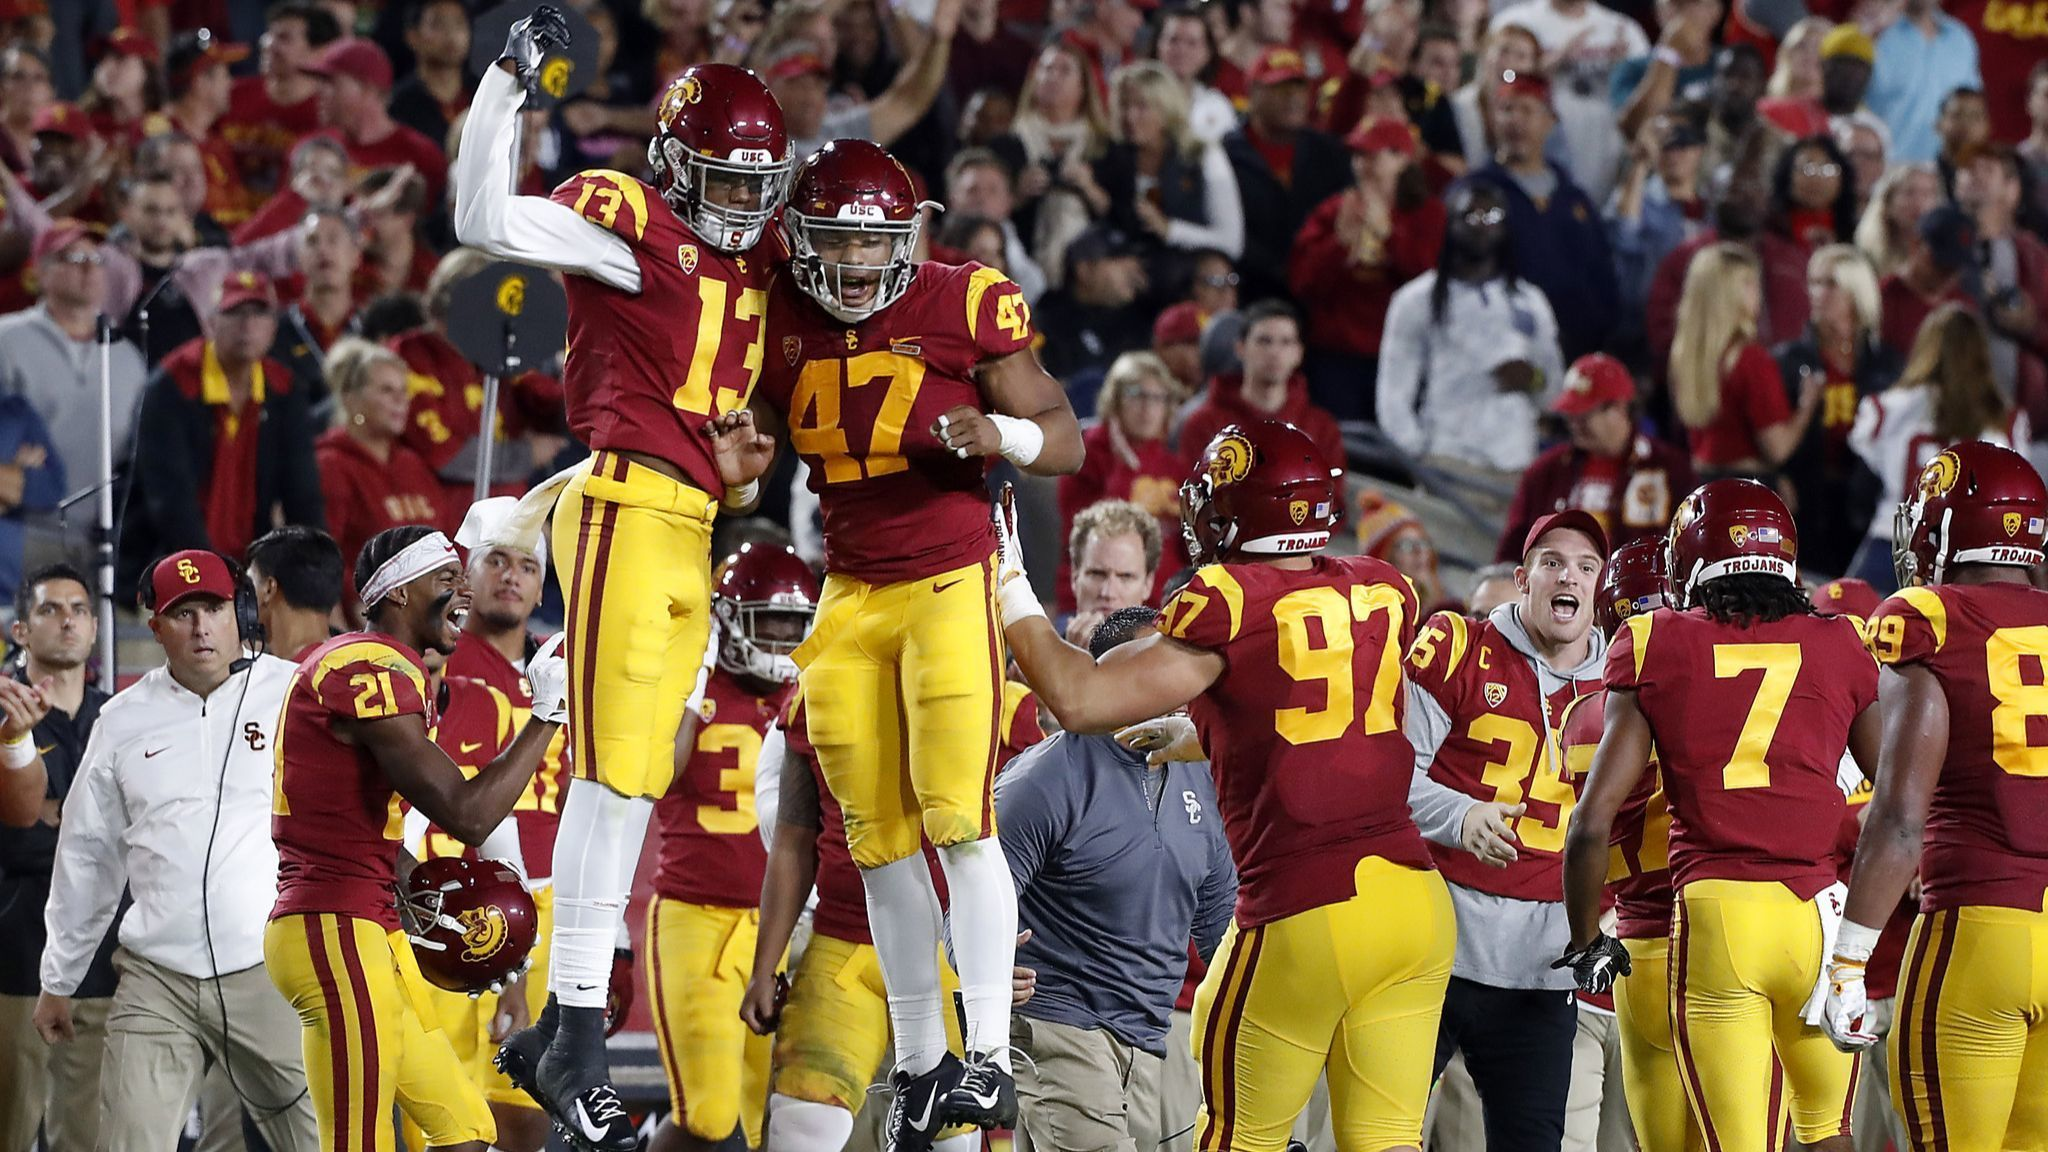 USC-Arizona State: A look at how the teams match up